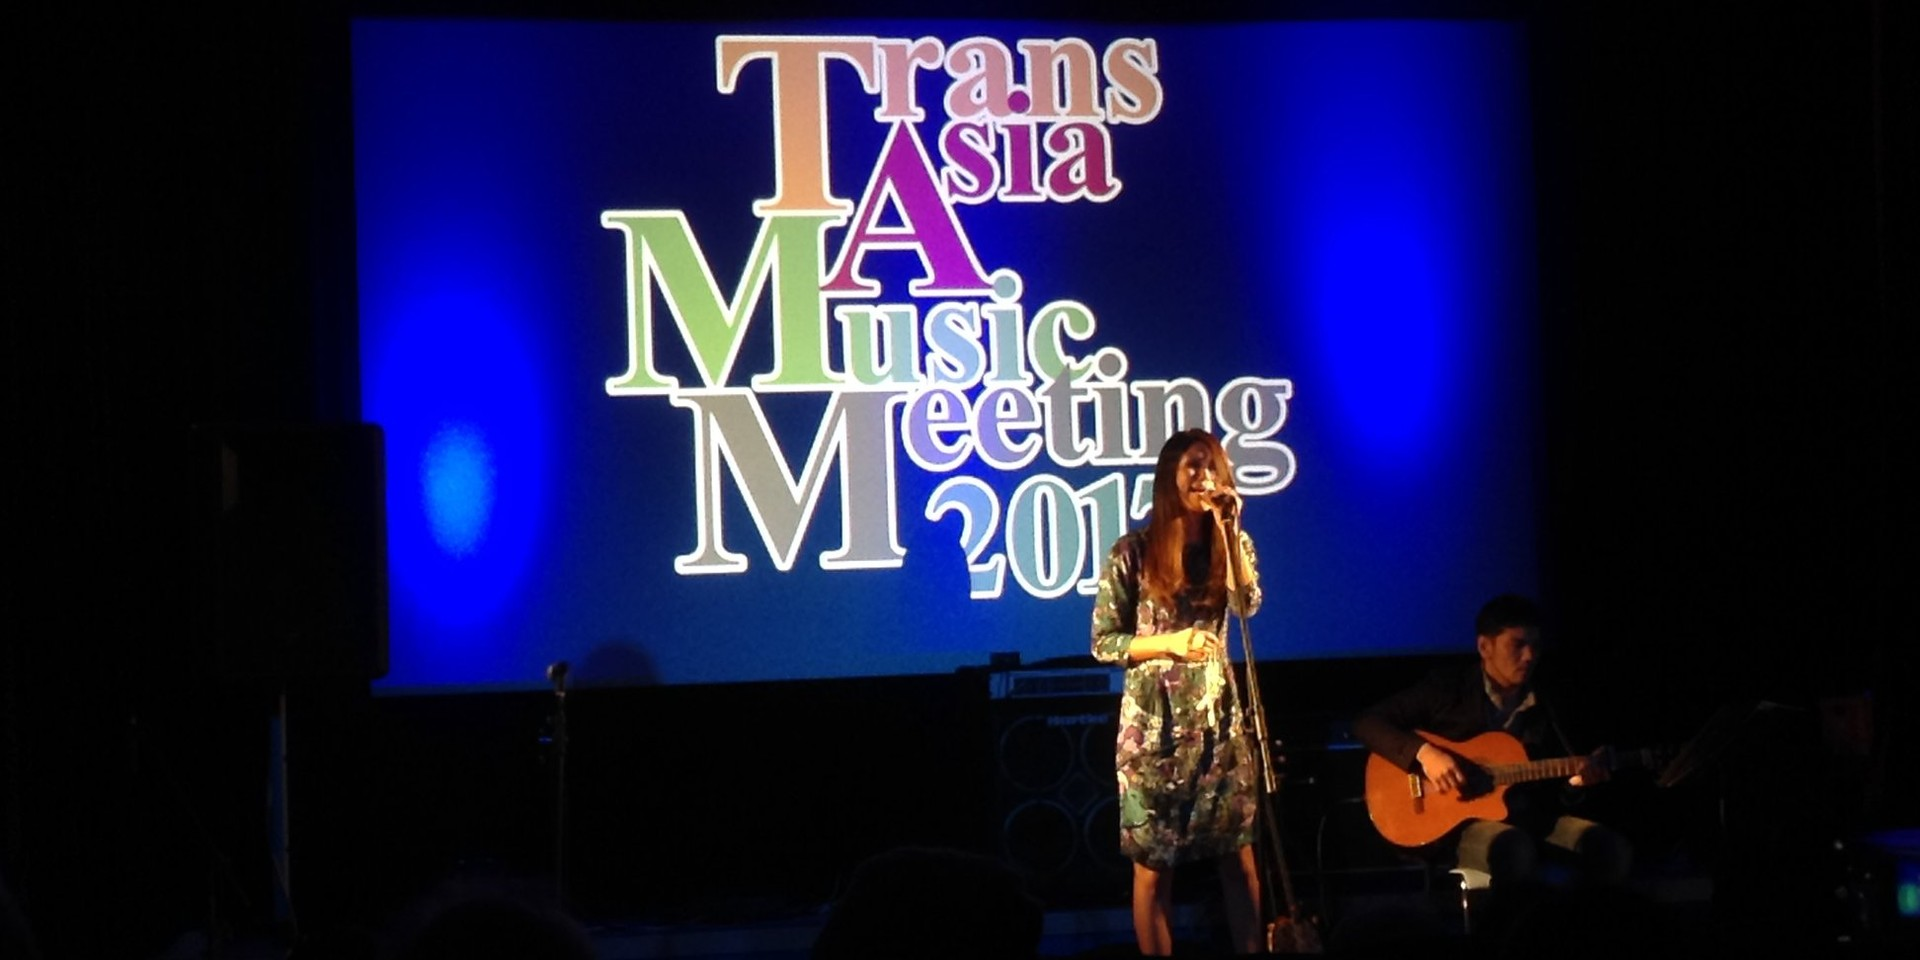 The fifth Trans Asia Music Meeting is set to take place in Japan this weekend